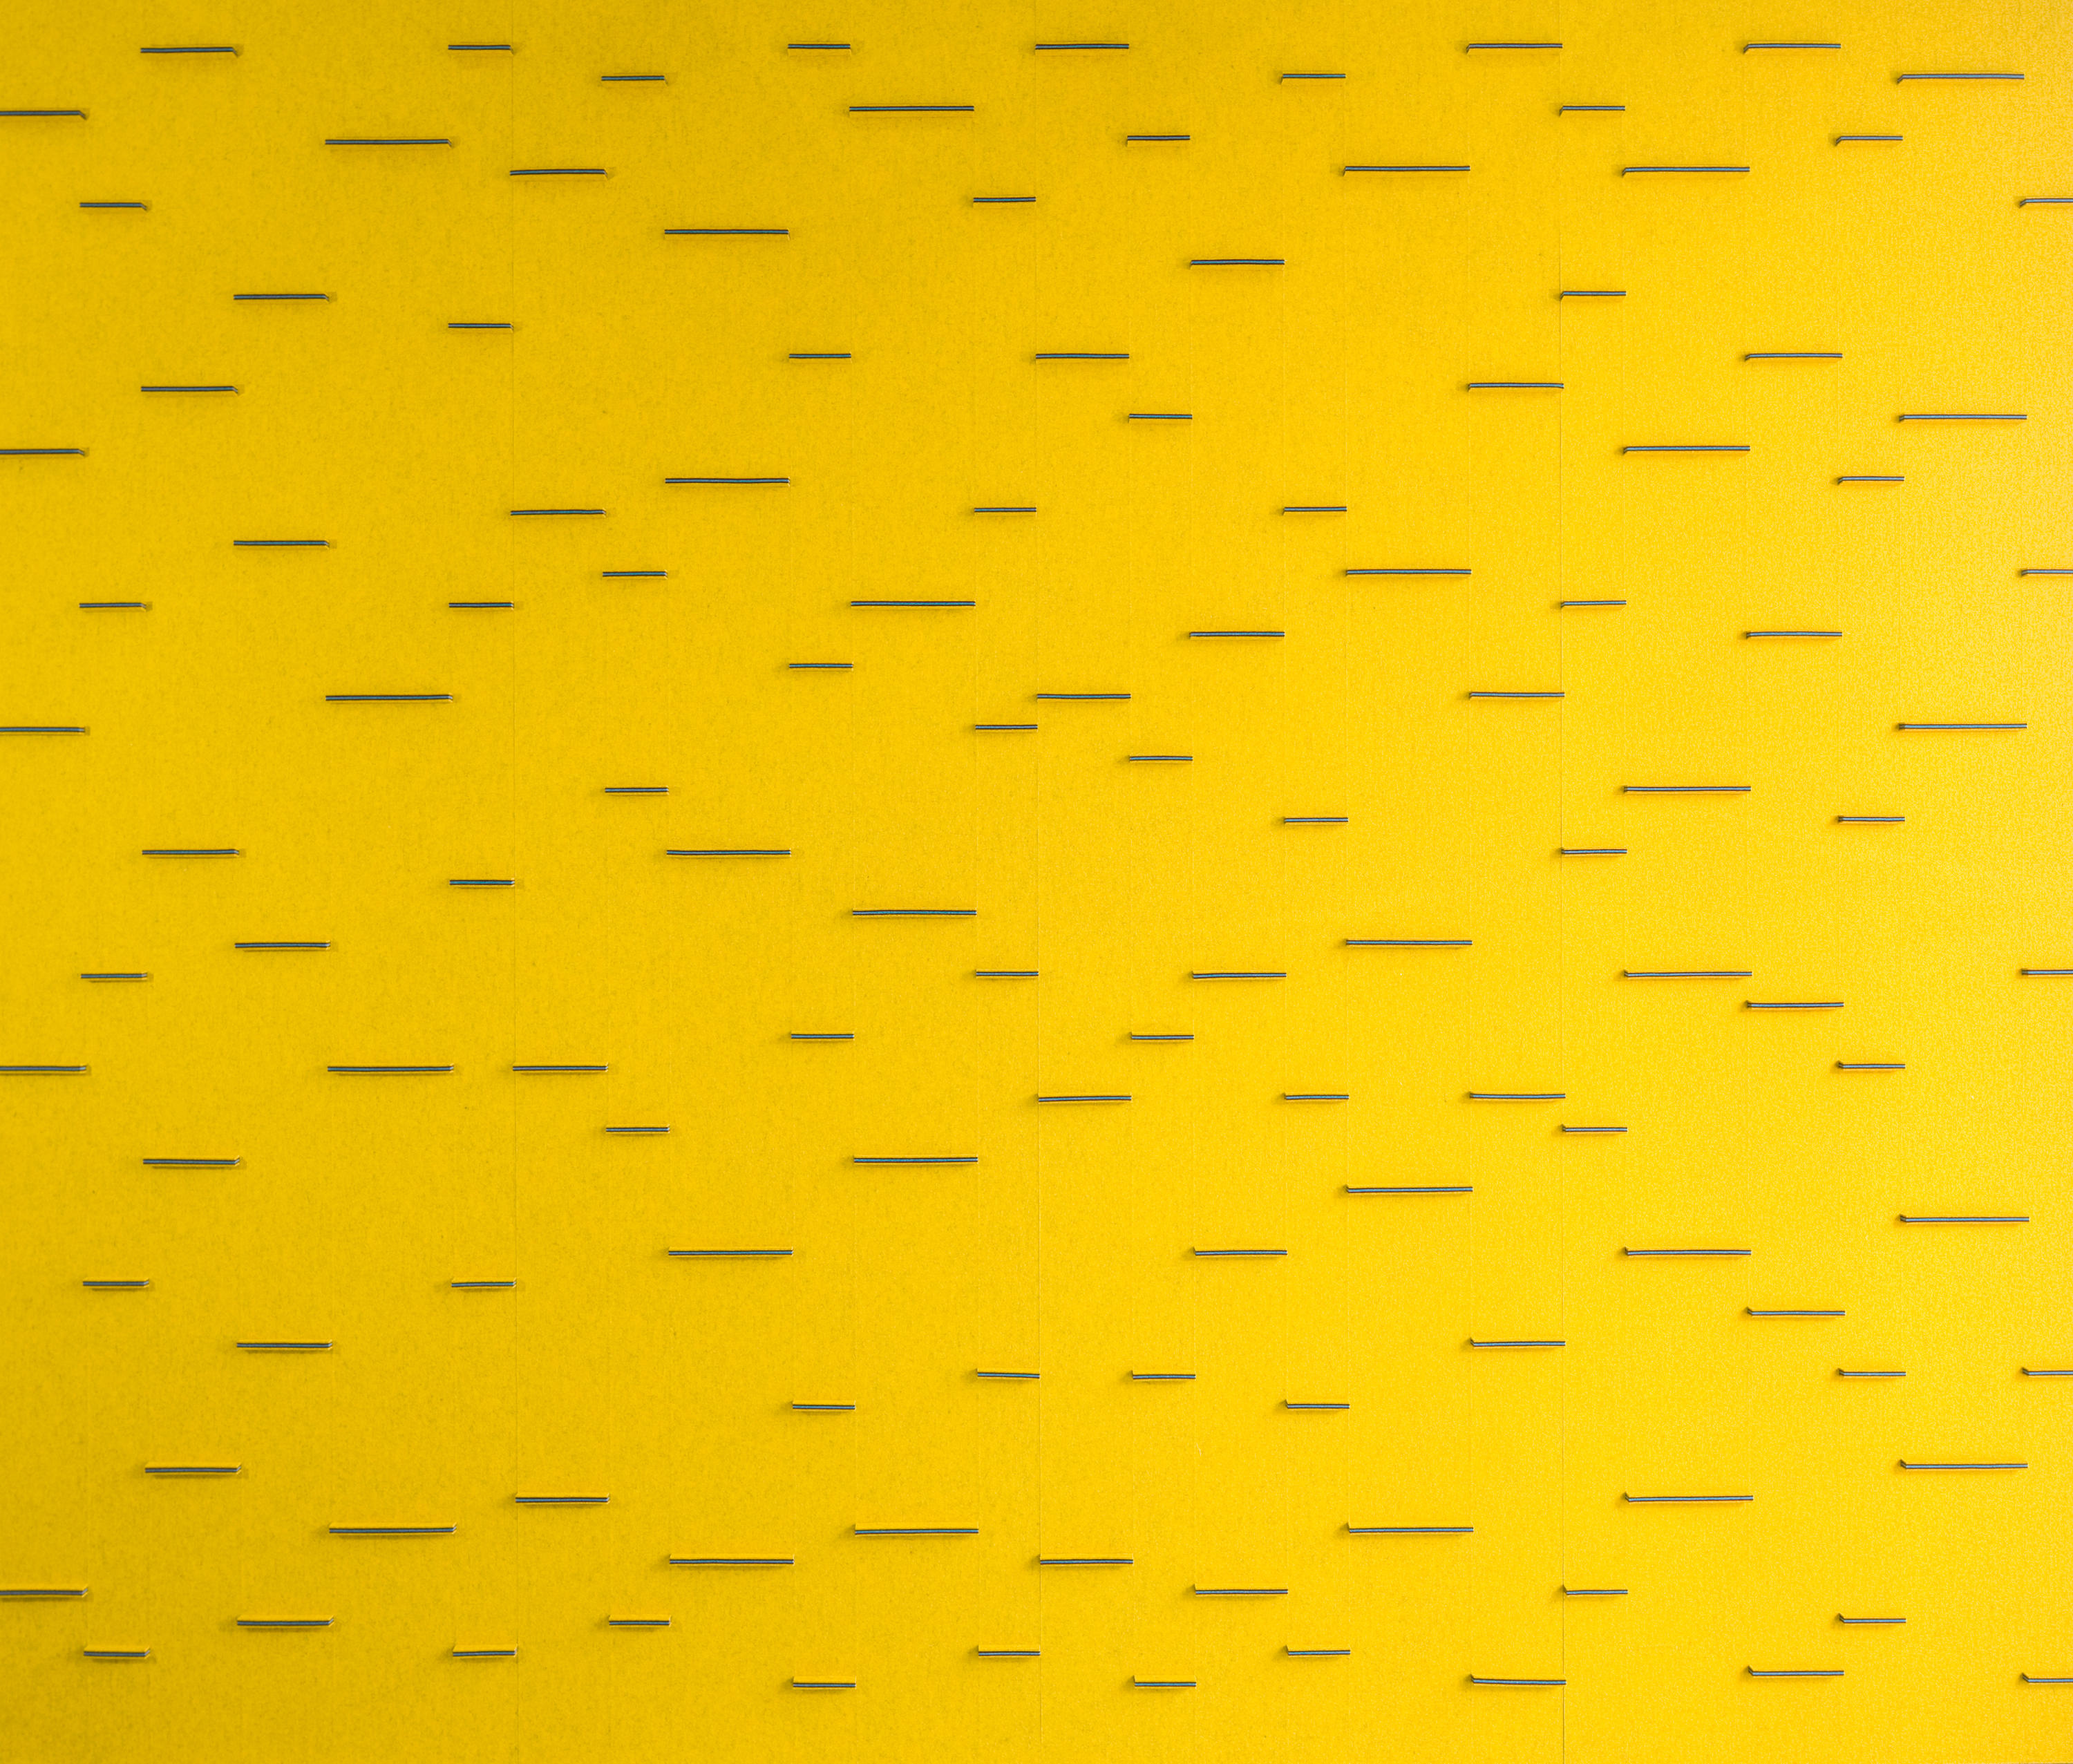 HORIZONTAL BAR - Sound absorbing wall art from Submaterial | Architonic